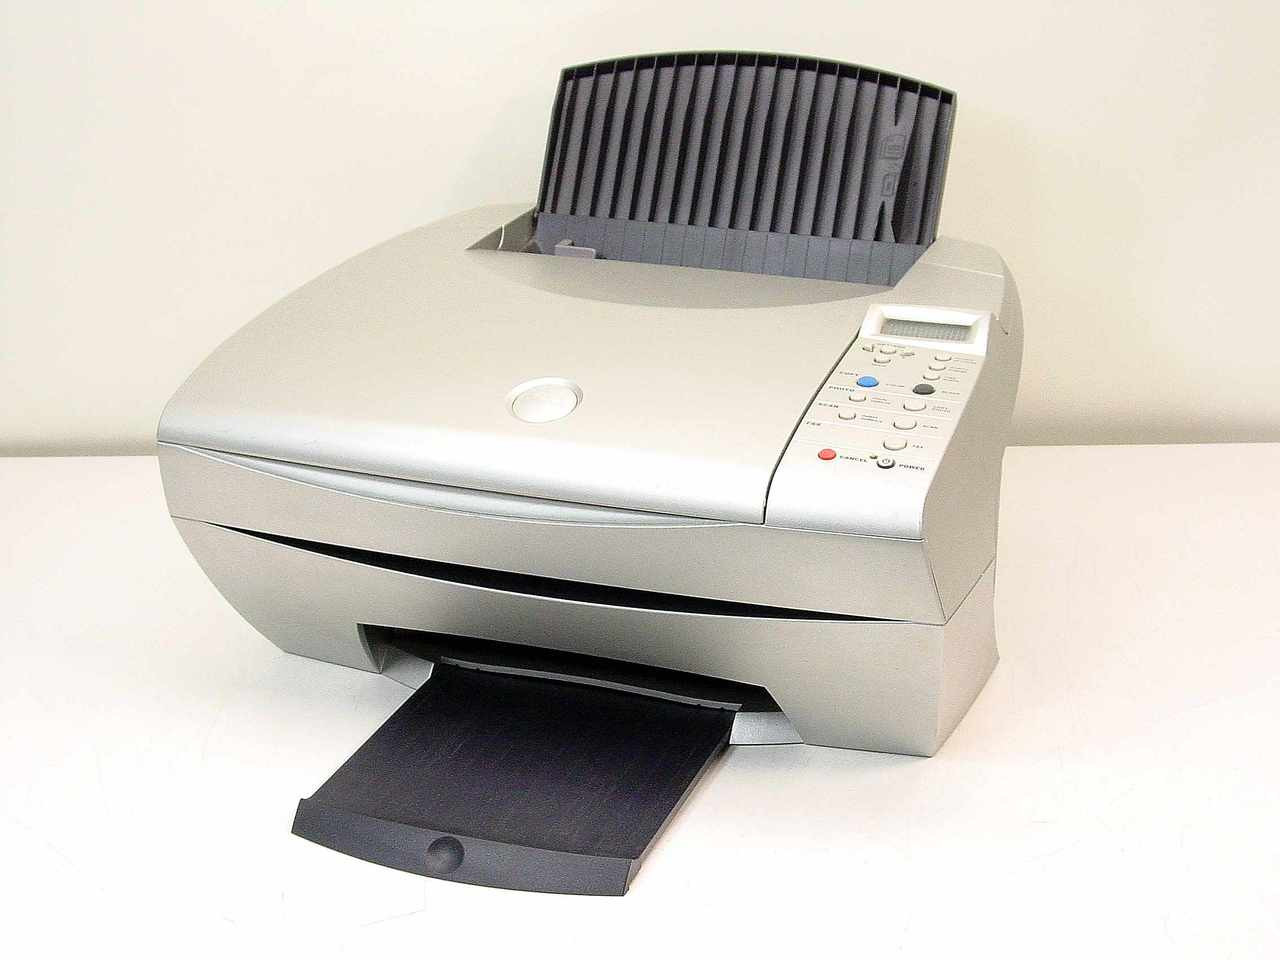 Dell personal printer a940 drivers download update dell software.